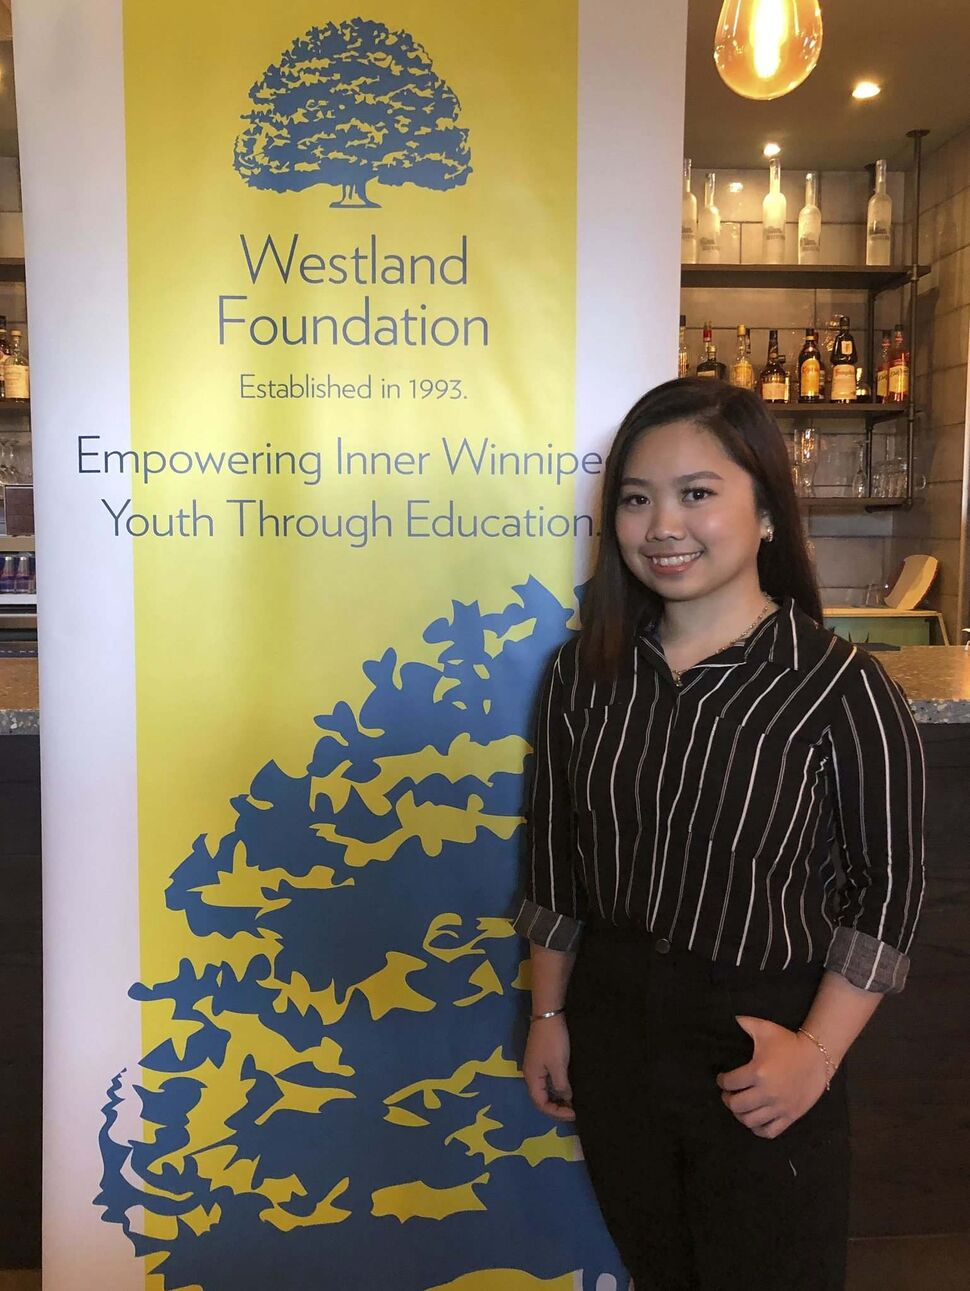 Carmela Mayoralgo, a second-year Culinary Arts student at Red River College and the first-ever Westland-Carbone Scholar, at the Westland-Carbone Scholarship awarding event on Nov. 6, 2019 at Carbone Coal Fired Pizza in St. Vital. (Submitted, Inna Borysevych / Westland Foundation)